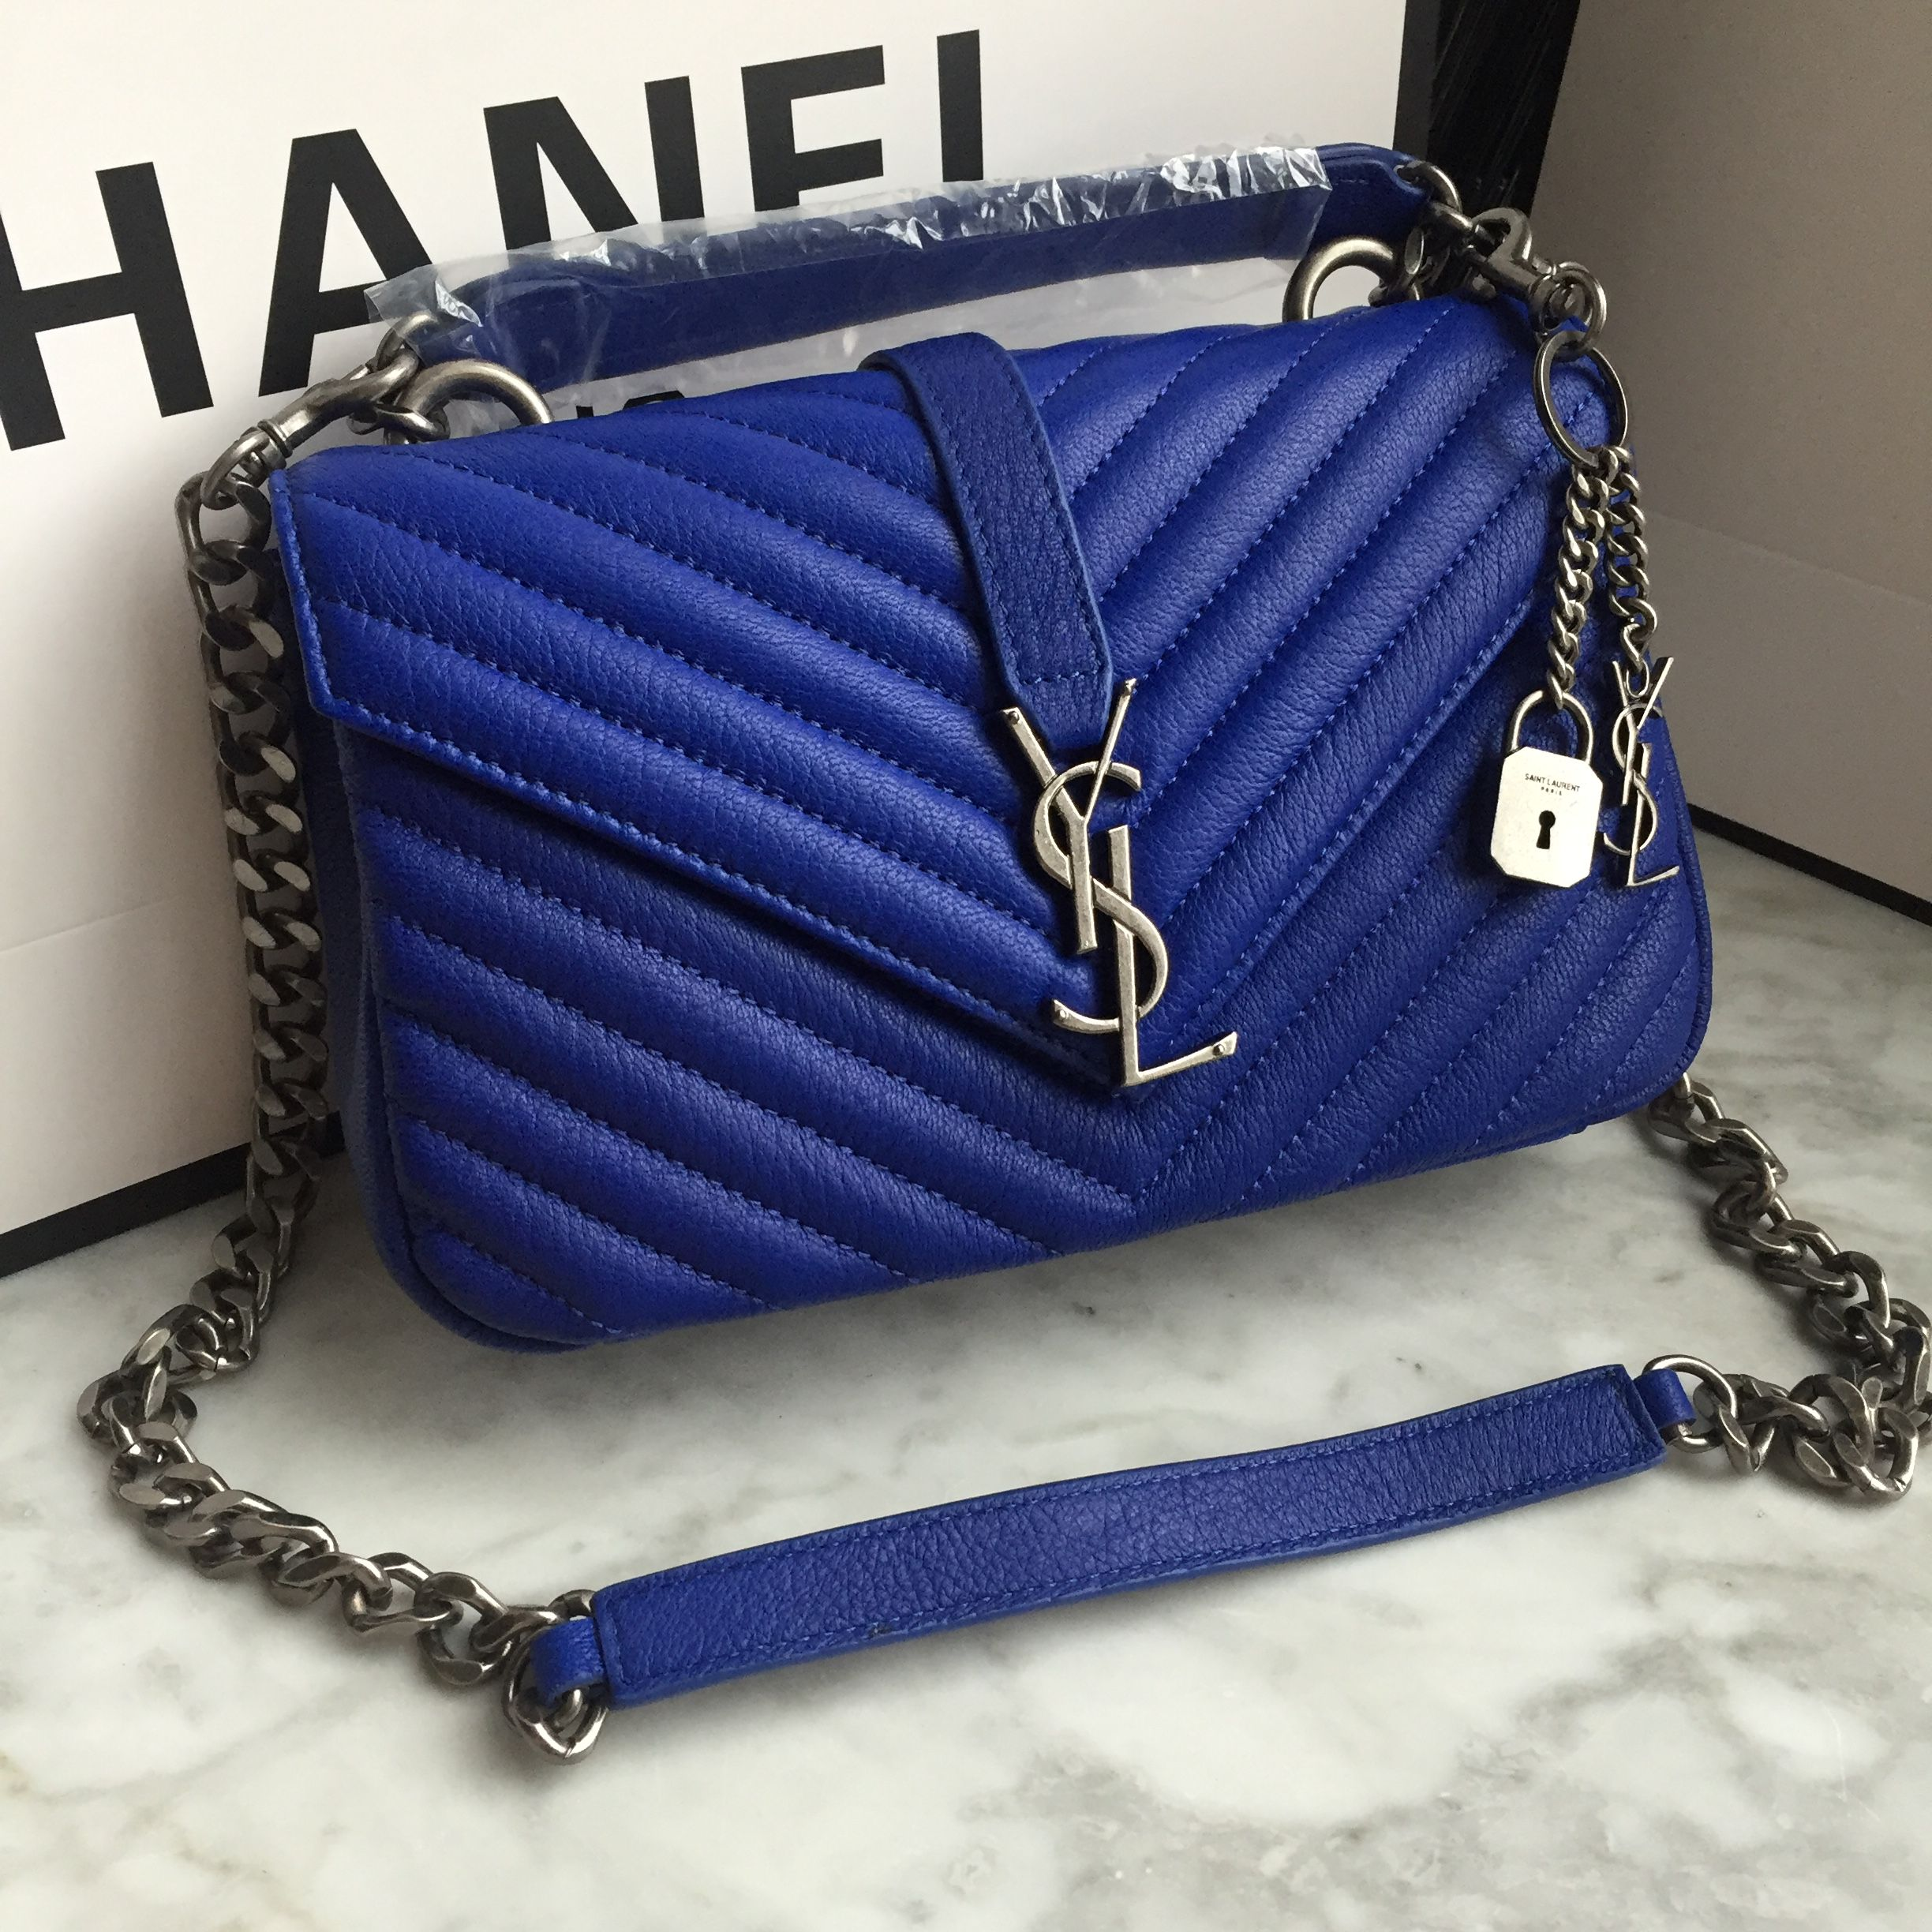 YSL Saint Laurent slp college bag deerskin blue  27c372f986d31